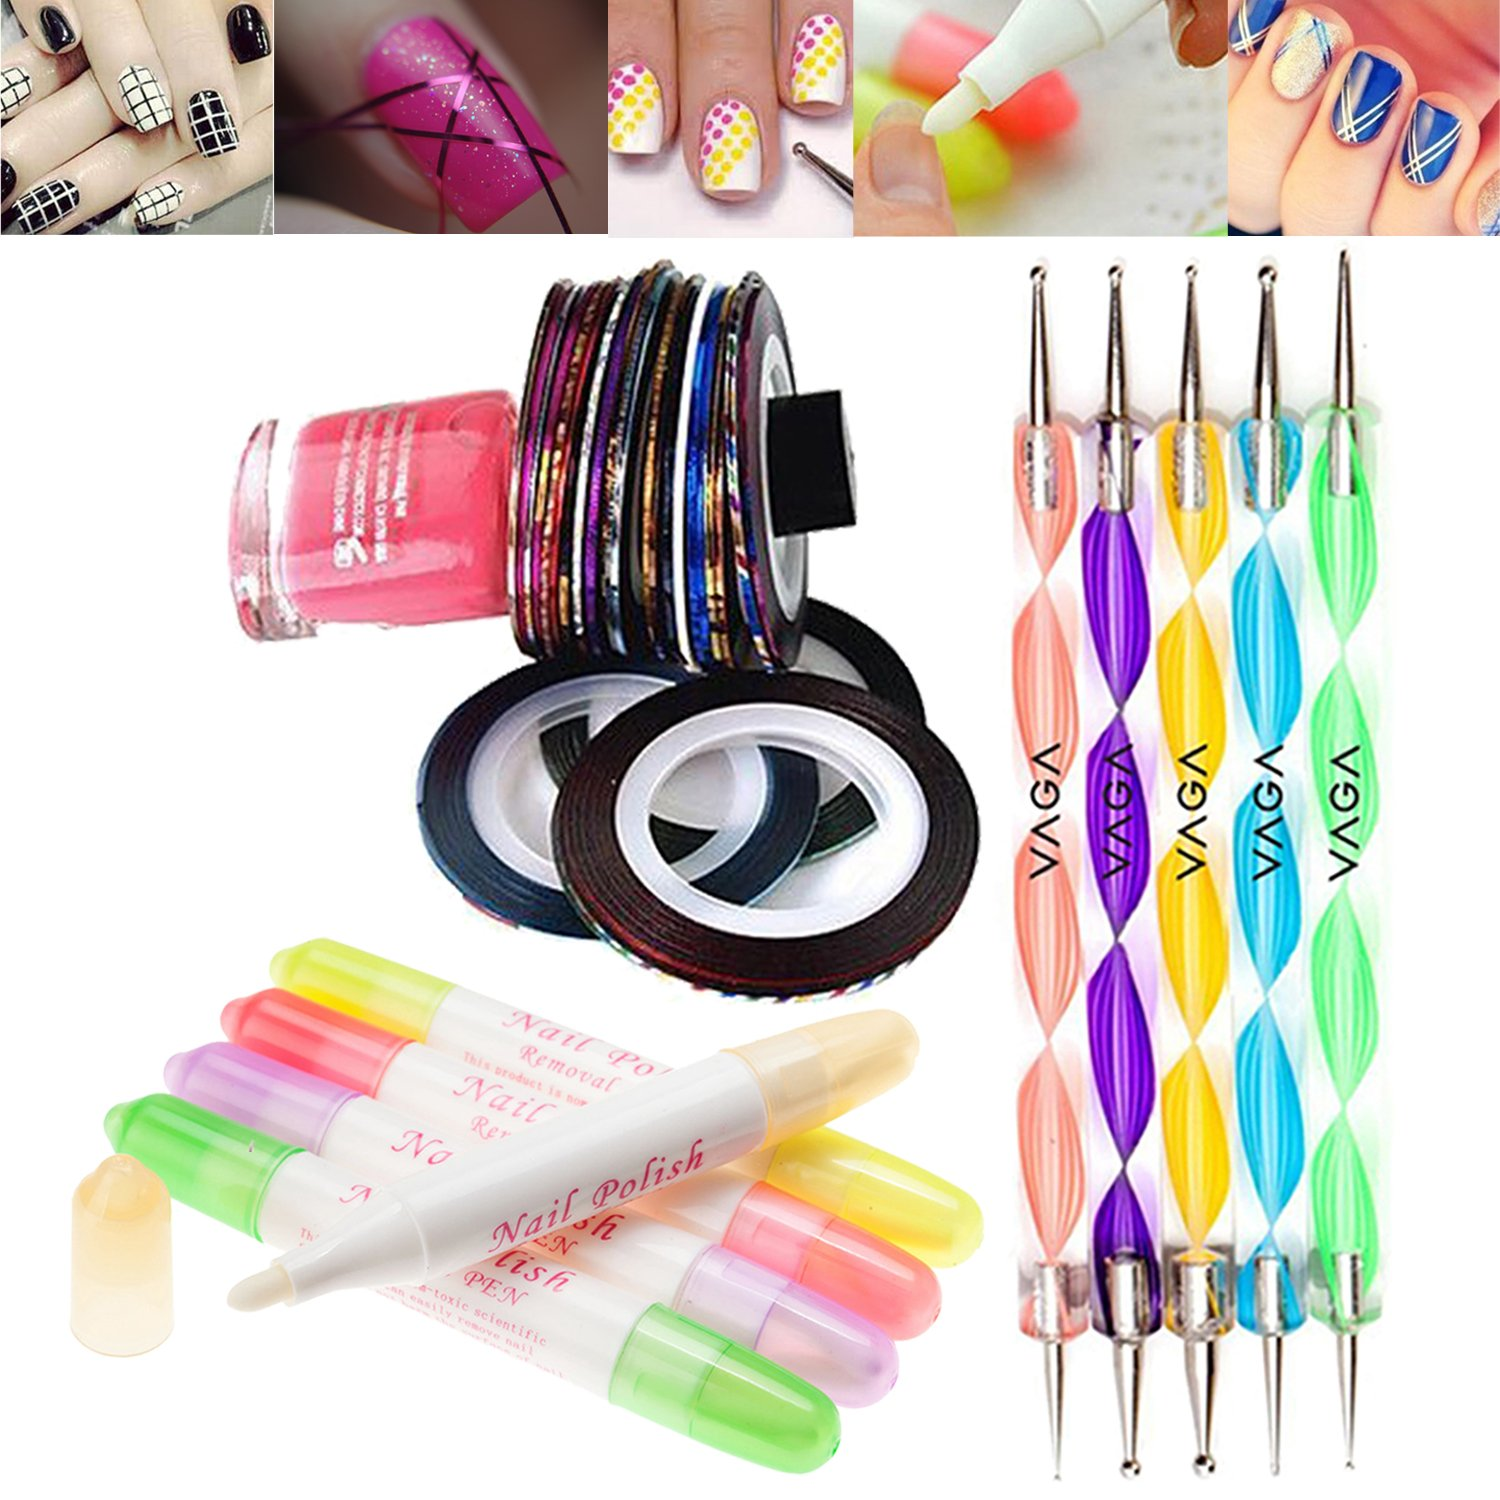 Great Value Professional Nail Art Set Kit With 5 Refillable Polish Varnish Removers / Correctors / Corrections Pens, 5 Double Ended Dotters / Dotting / Marbling Tools And 10 Rolls Striping Tapes / Lines Decorations Strips By VAGA®